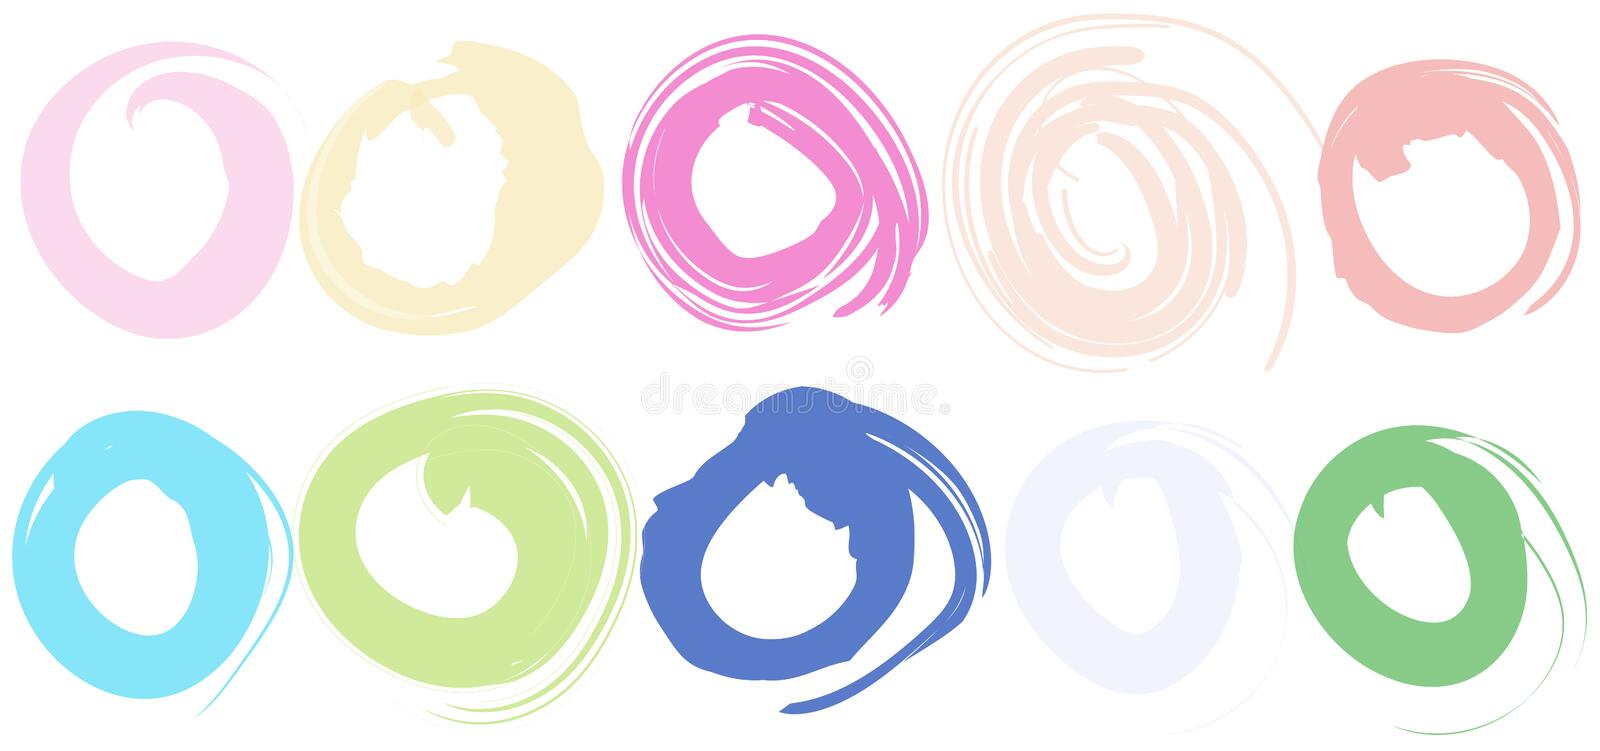 Bright abstract background, summer print, doodle lines, circles on white background stock illustration